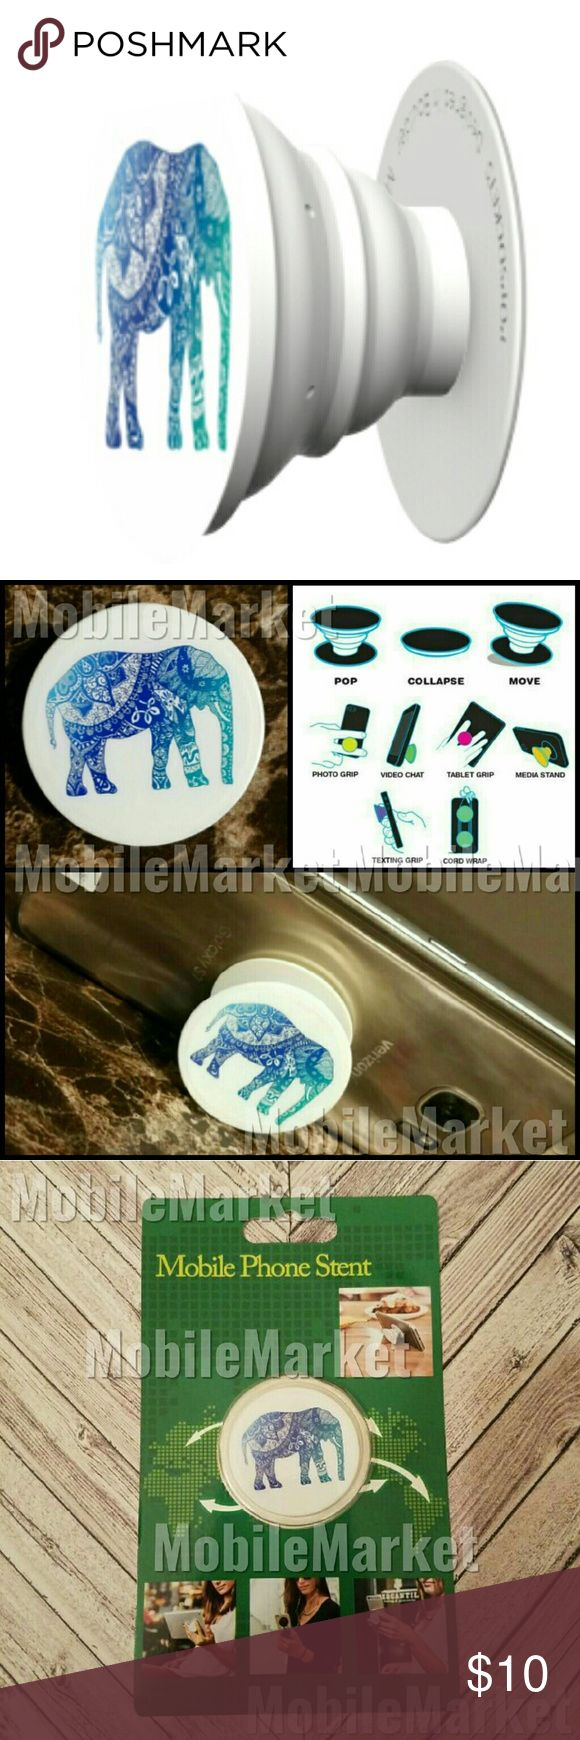 Mobile phone grip/stand lacey ombre elephant *this is an individual listing for 1 phone stand, color is according to first picture*  Pop, tilt, wrap, grip, collapse, repeat! Mobile phone stent like a pop socket (popsocket). Have a secure grip while calling, taking selfies, and texting. Use as a phone stand, portrait and landscape mode. and even to wrap your headphones around and prevent tangles and knots!! Retail packaging makes it the perfect gift! Mobile Market Accessories